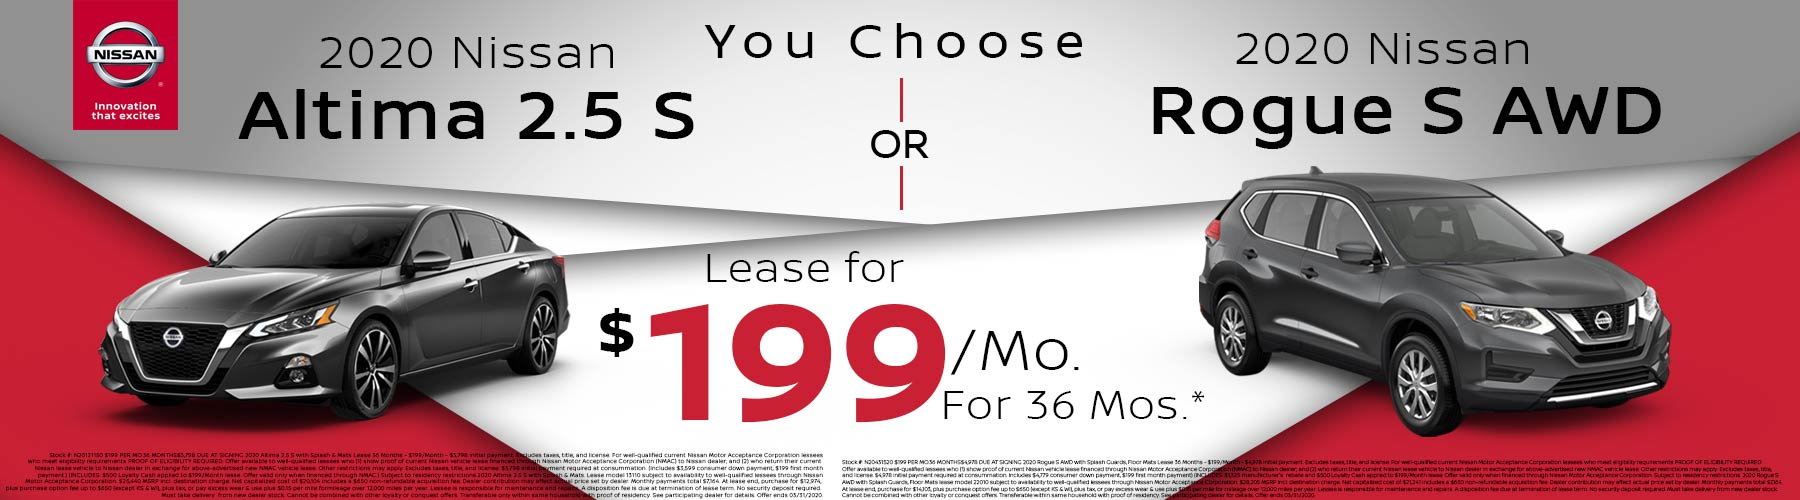 Altima and Rogue Lease Offer